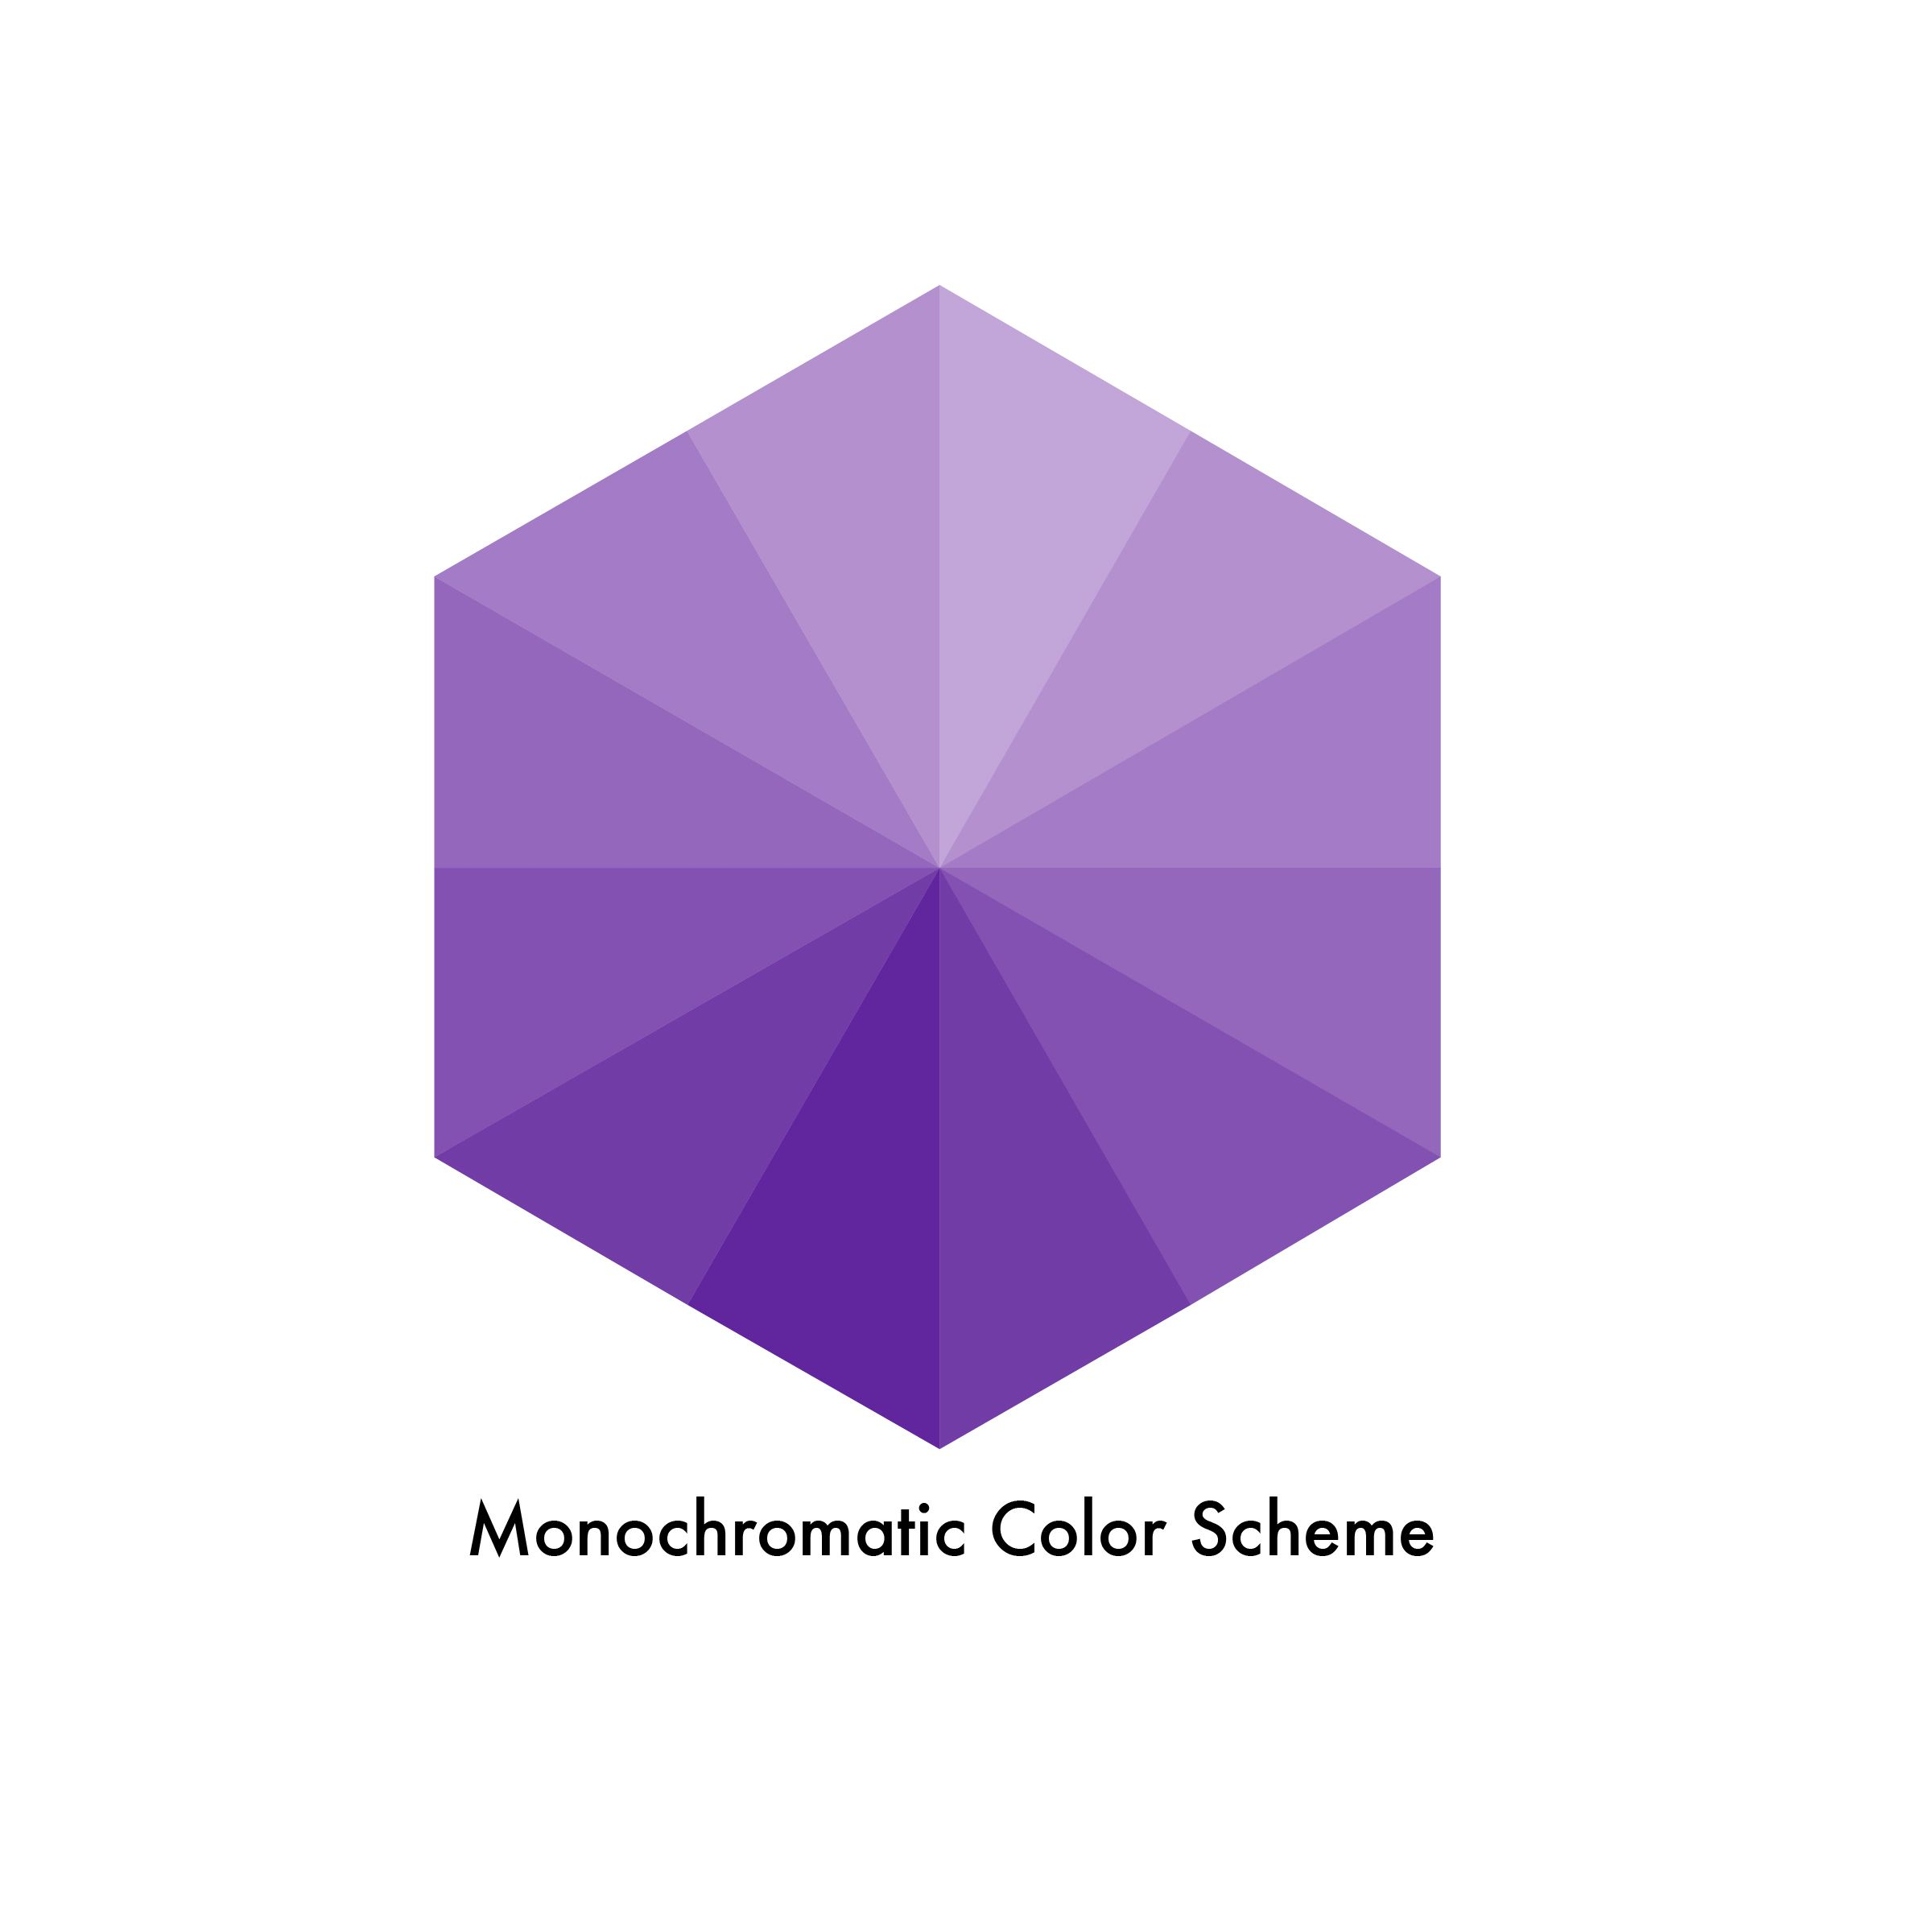 What Is Monochromatic Color Scheme monochromatic color scheme: this is derived from a single hue